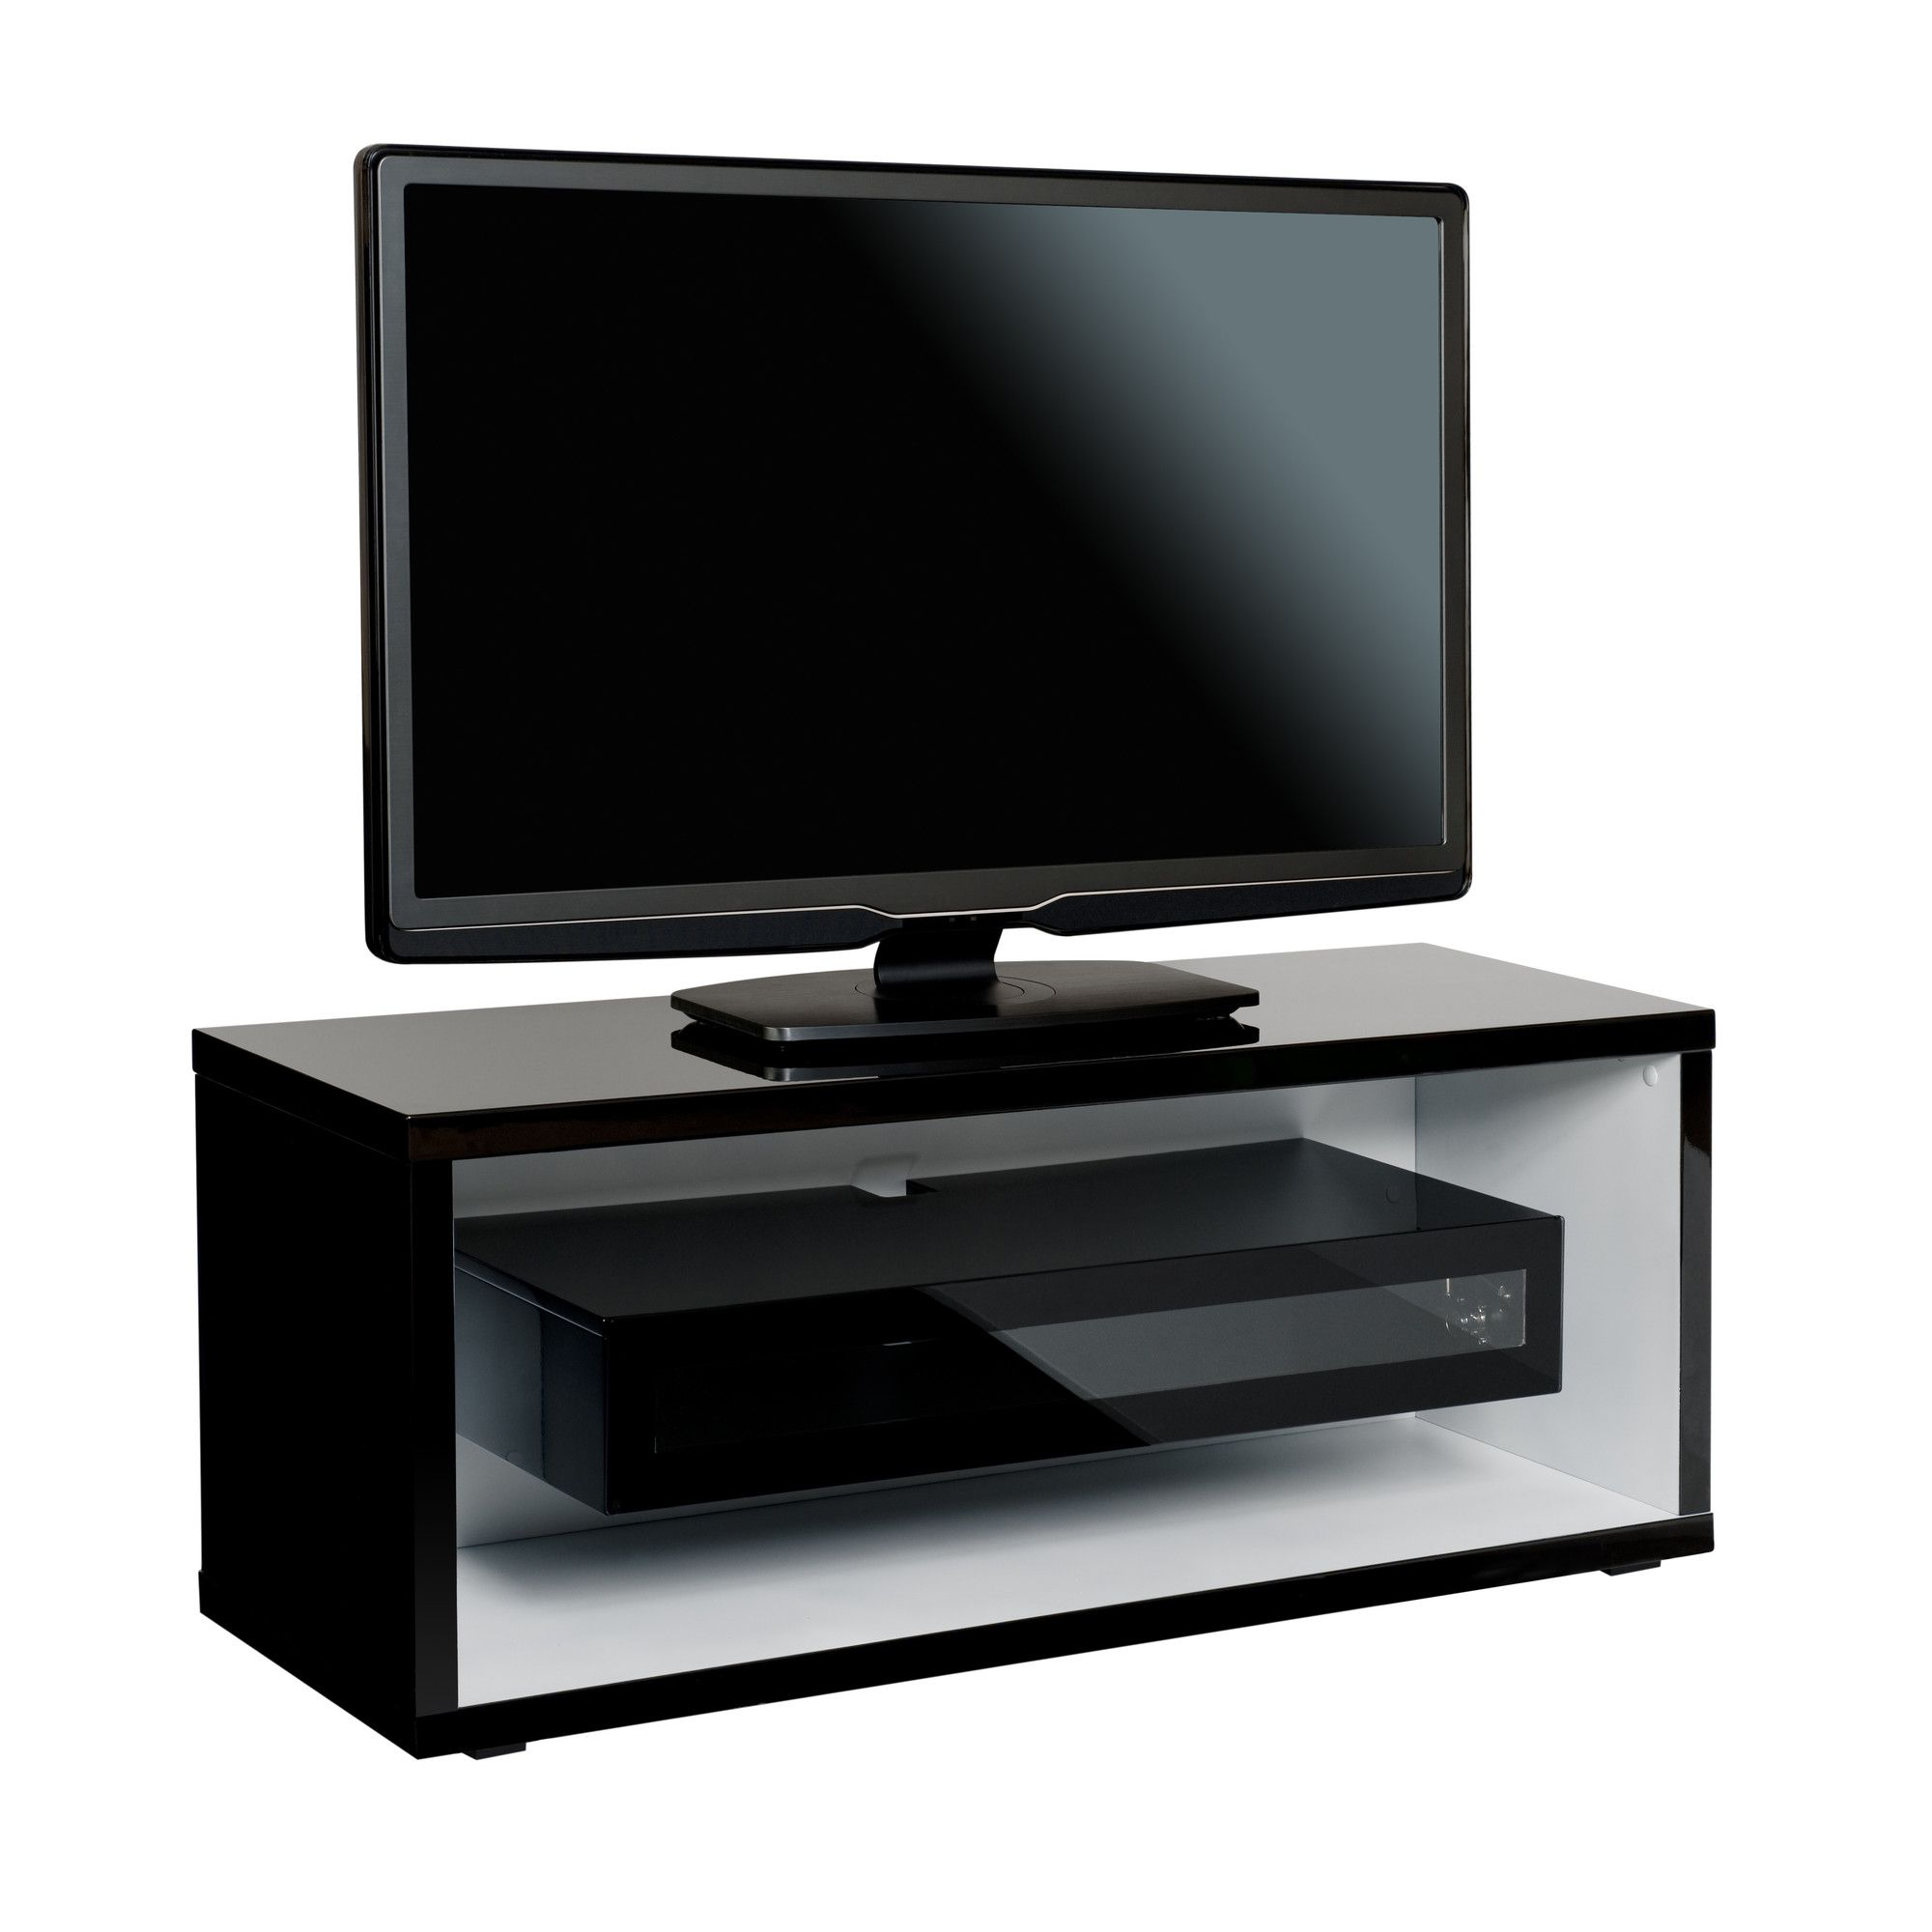 Ateca Vision Majestic TV Stand at Tescos Direct